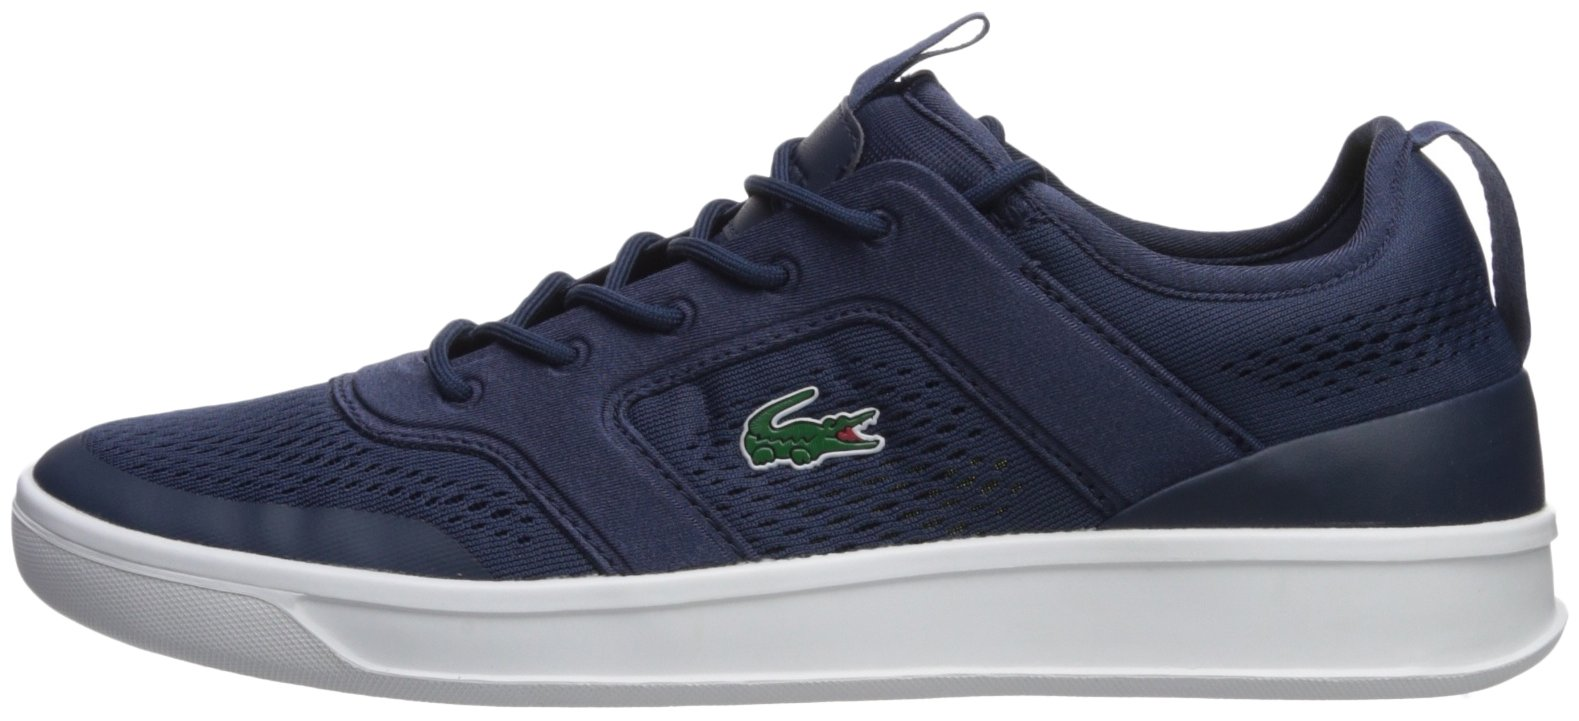 Lacoste Men's Explorateur Sport Sneaker, Navy, 9.5 M US by Lacoste (Image #5)